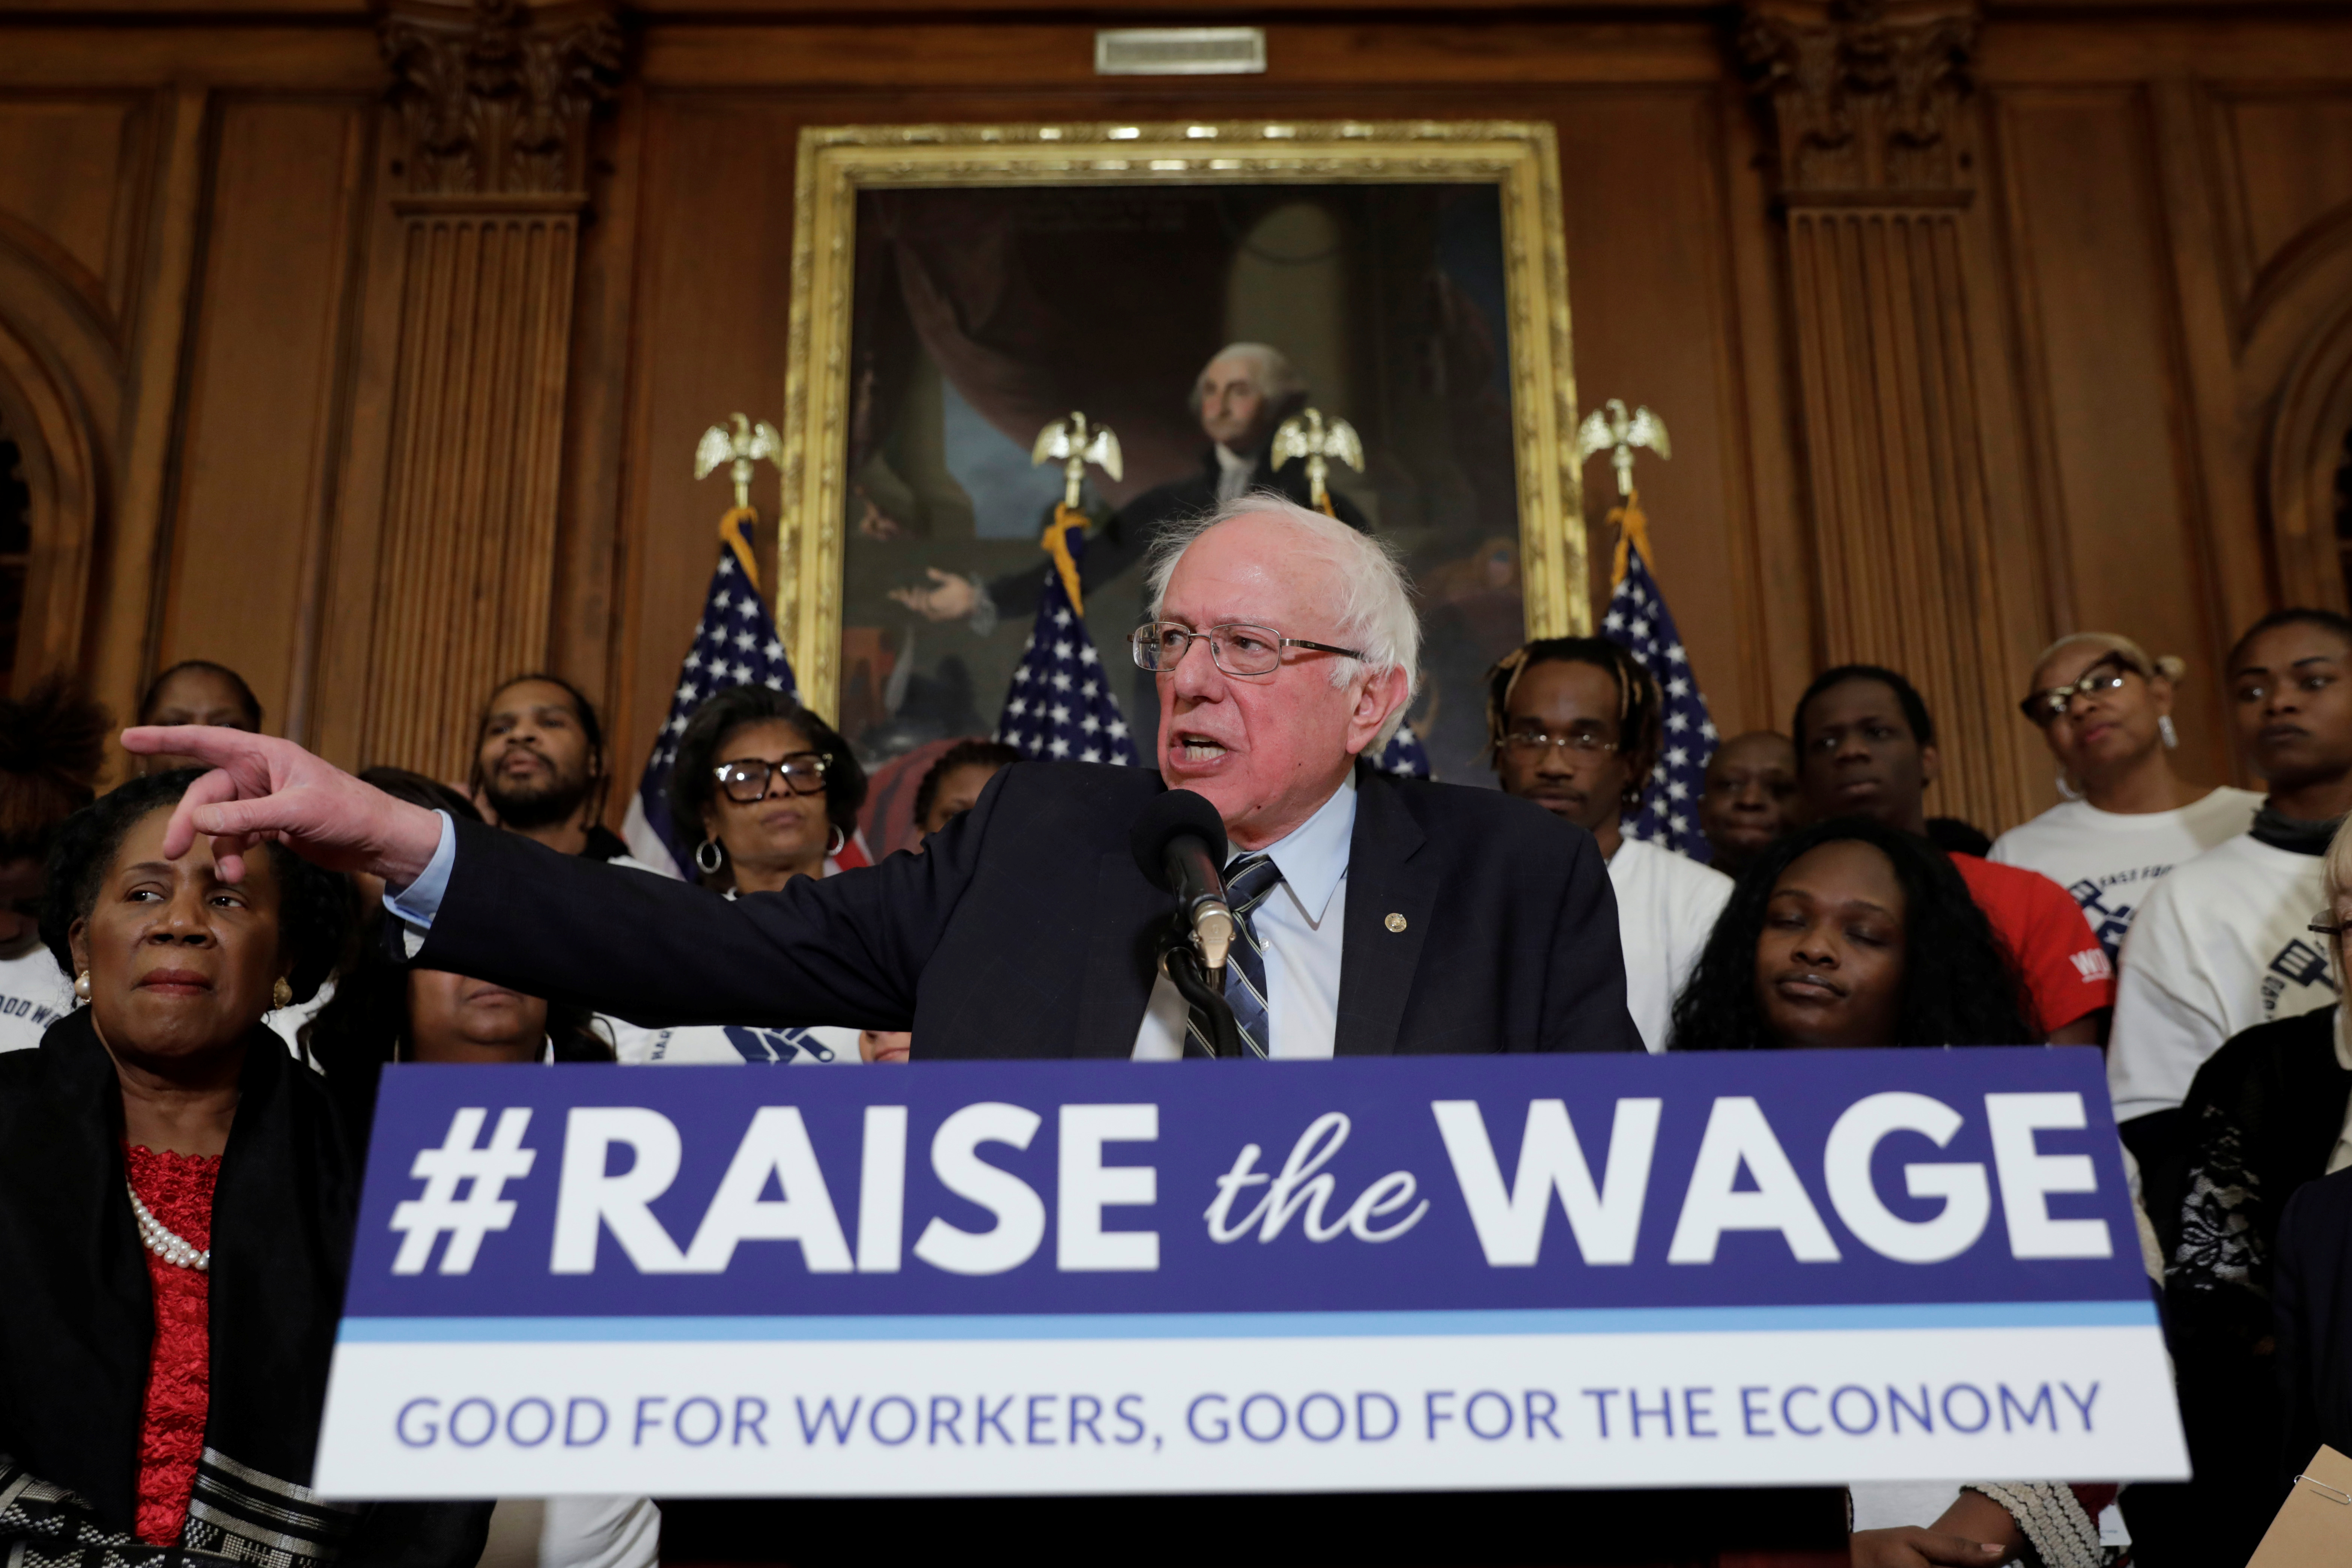 Senate Democrats sponsor bill to hike minimum wage to $15 an hour